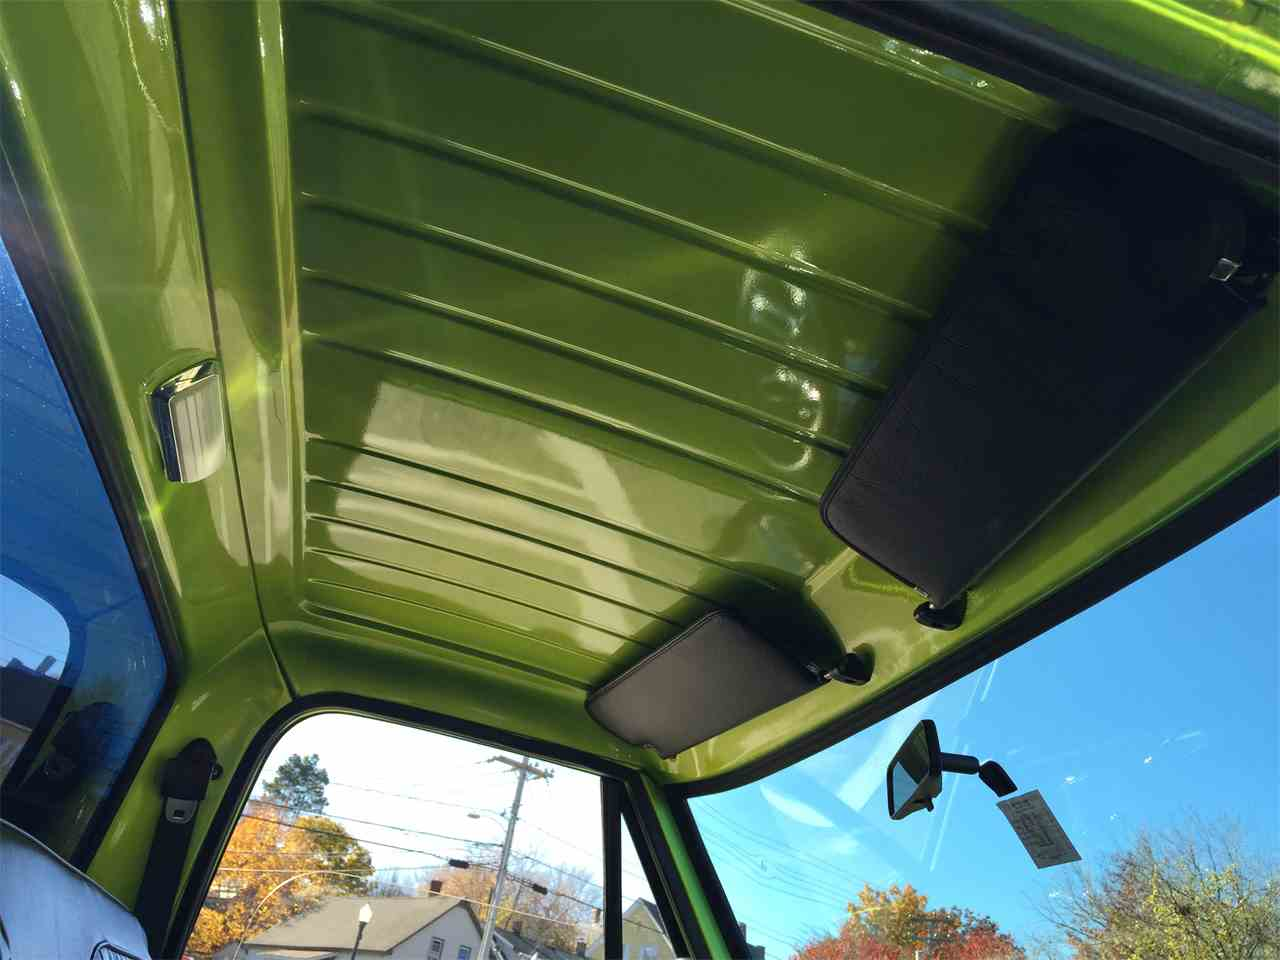 Large Picture of 1972 C10 located in Grimes Iowa - $21,000.00 Offered by a Private Seller - NE27